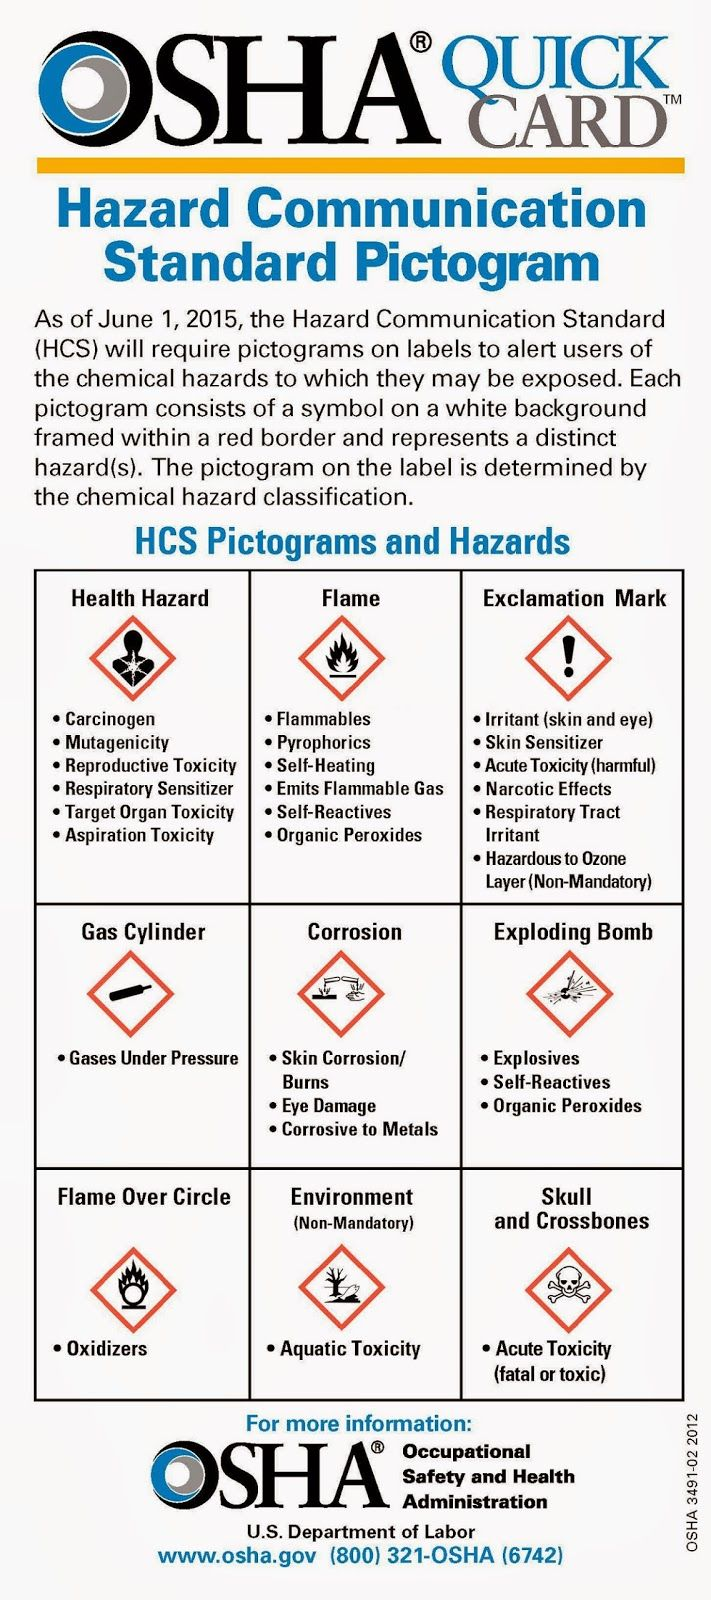 Workplace Safety pictogram from OSHA Workplace safety